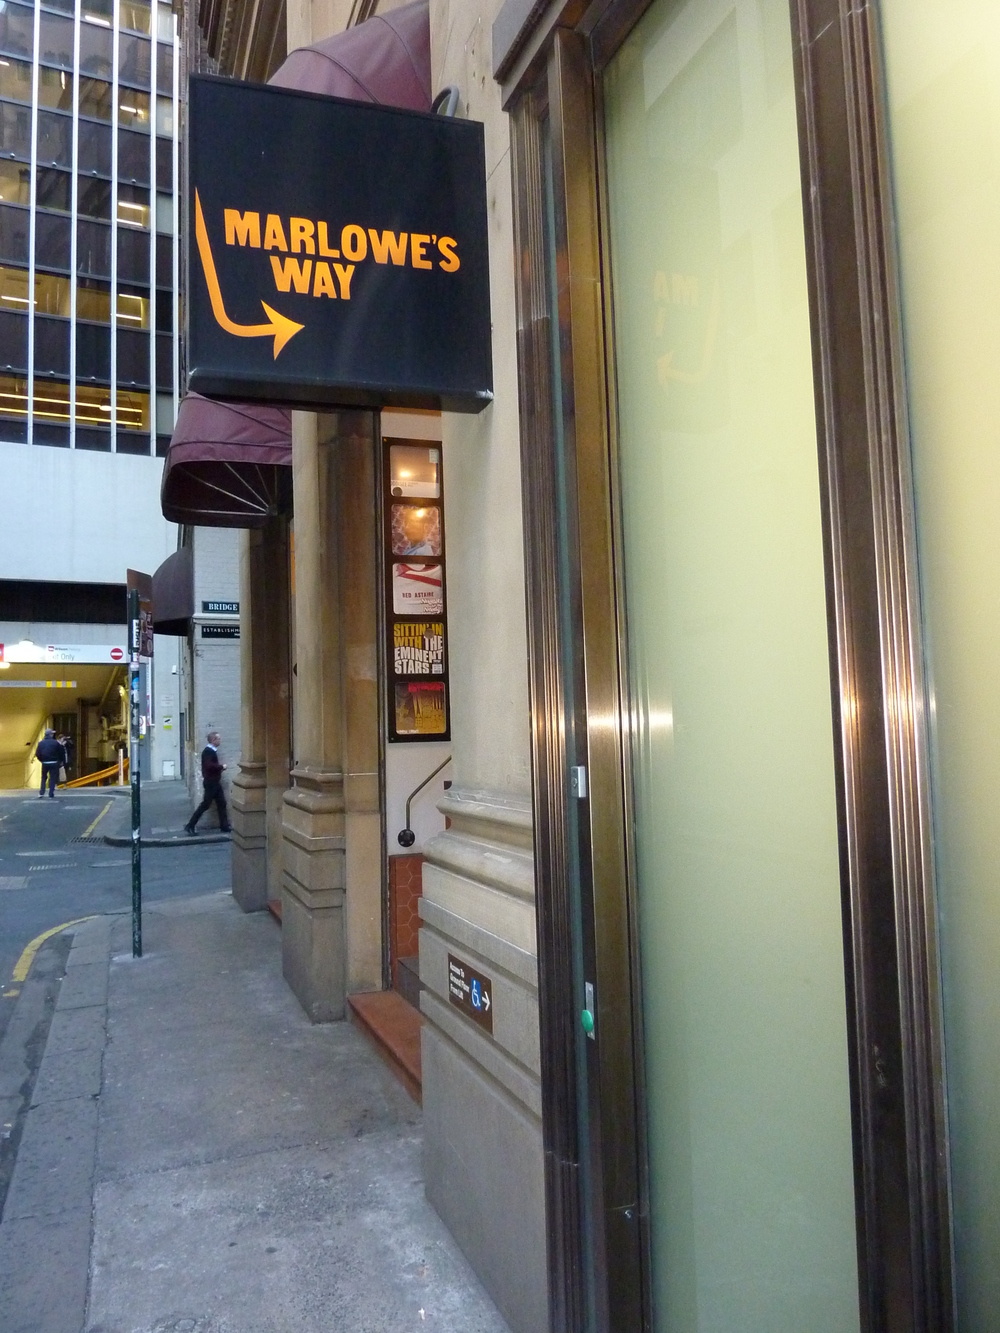 Marlowe's Way | Great little place for yummy sandwiches and a pint